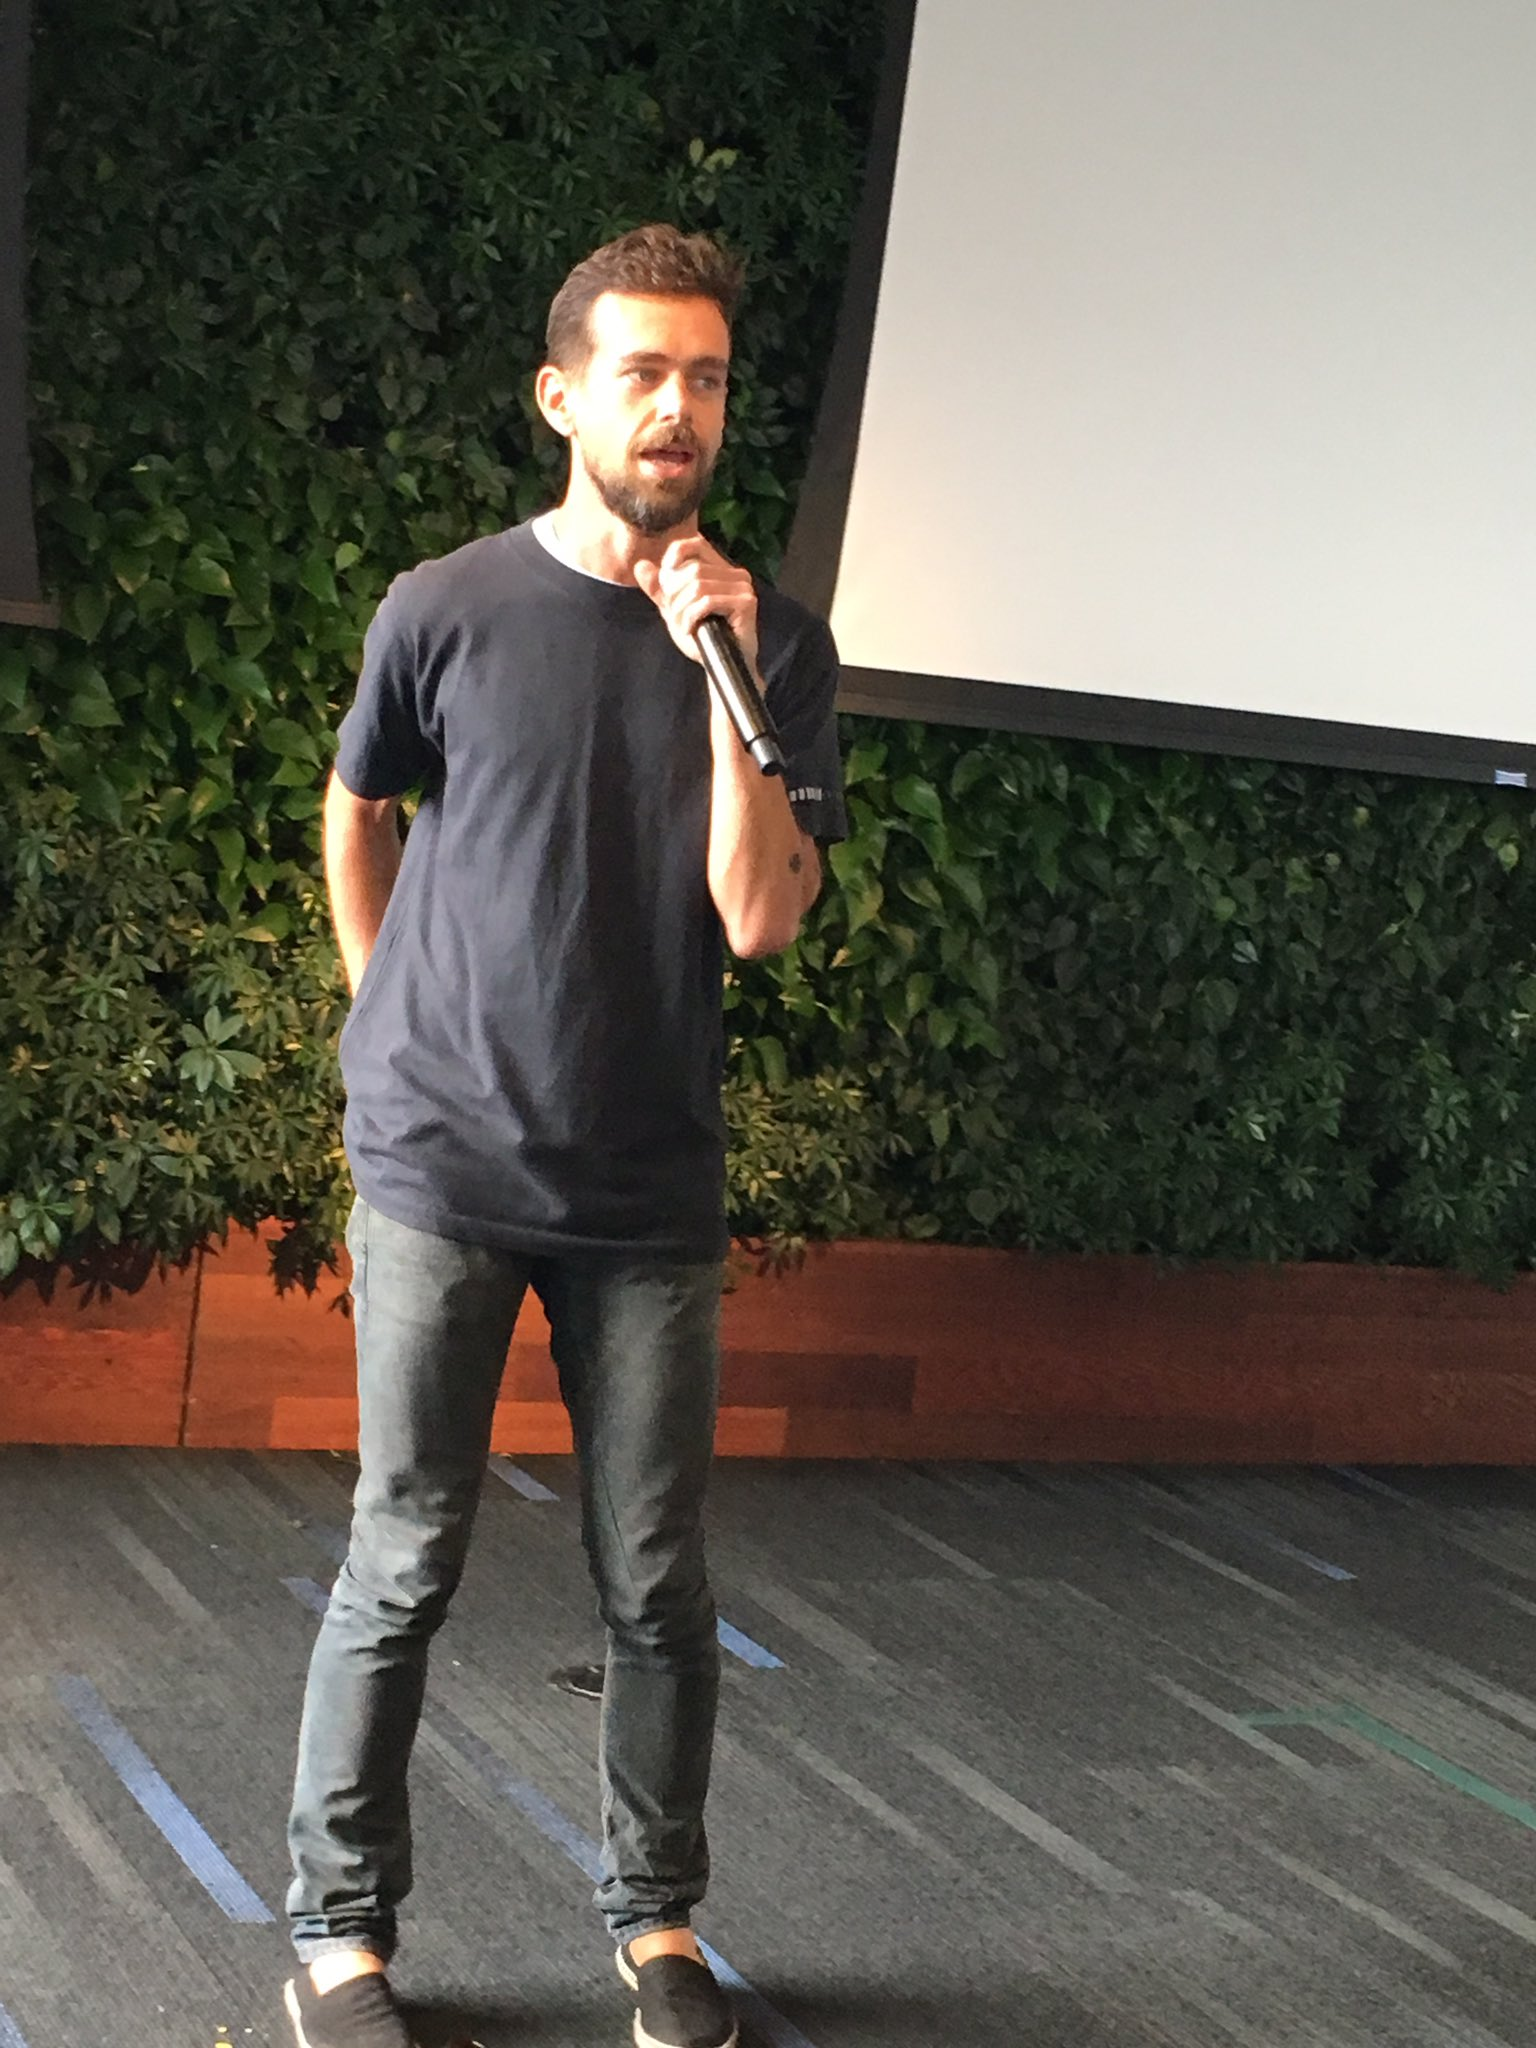 Awesome insights from @jack opening the #summit2040 https://t.co/gV9ul2RGp3